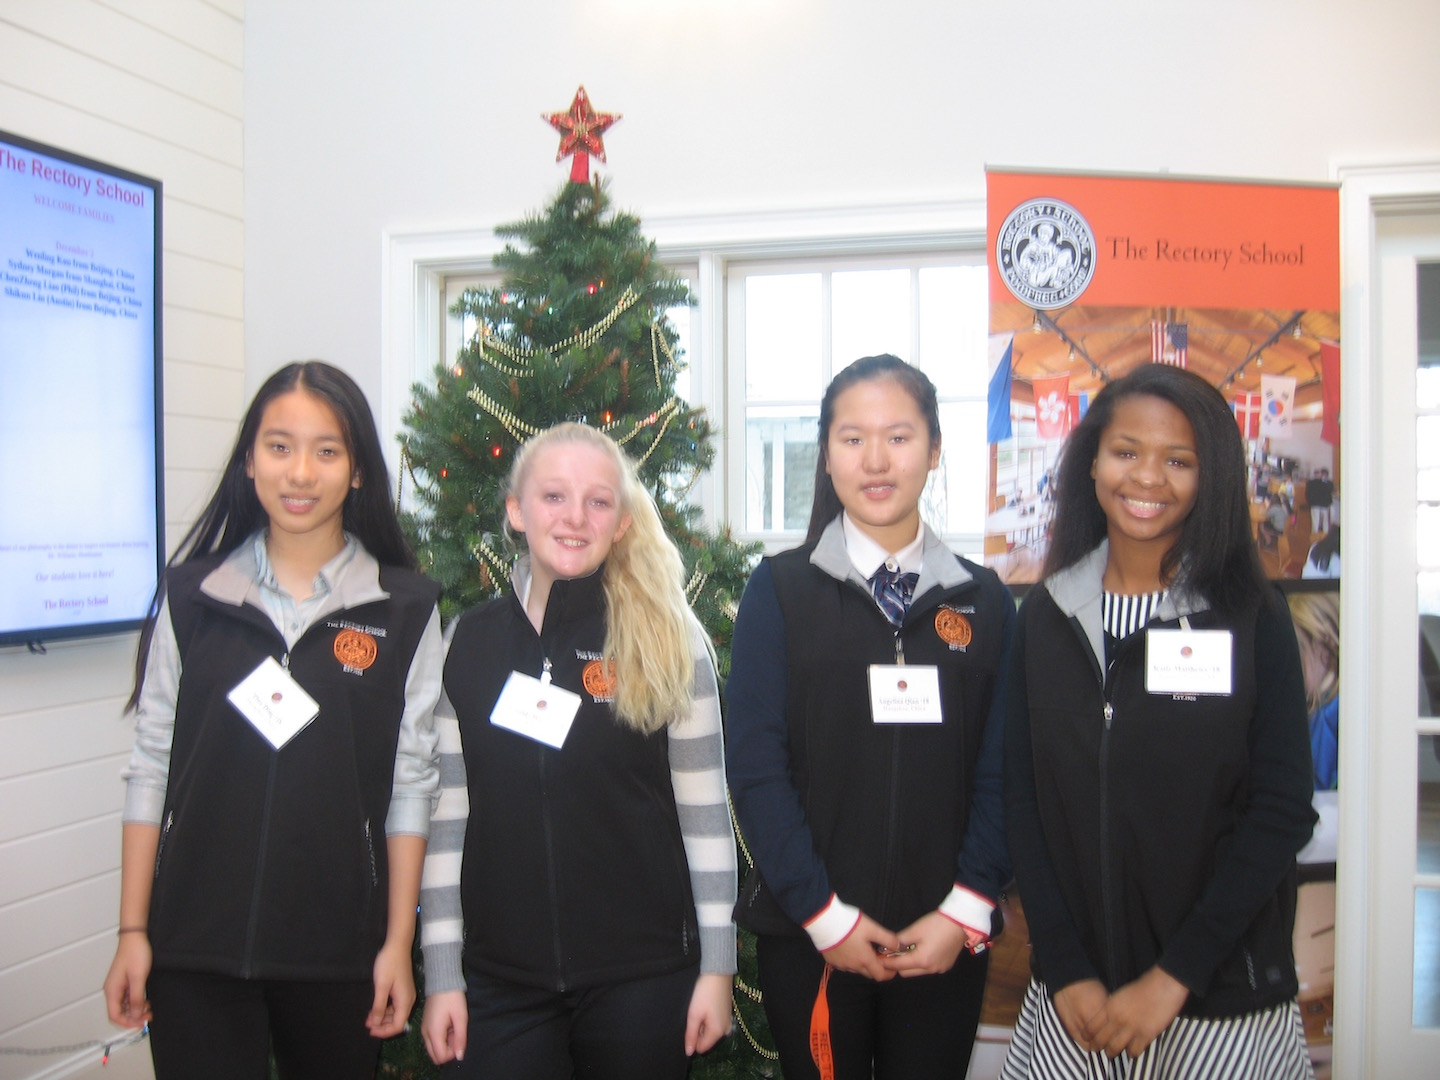 A few of Rectory's current Student Ambassadors, from left to right, Tina D., Kassidy W., Angelina Q., and Katie M.